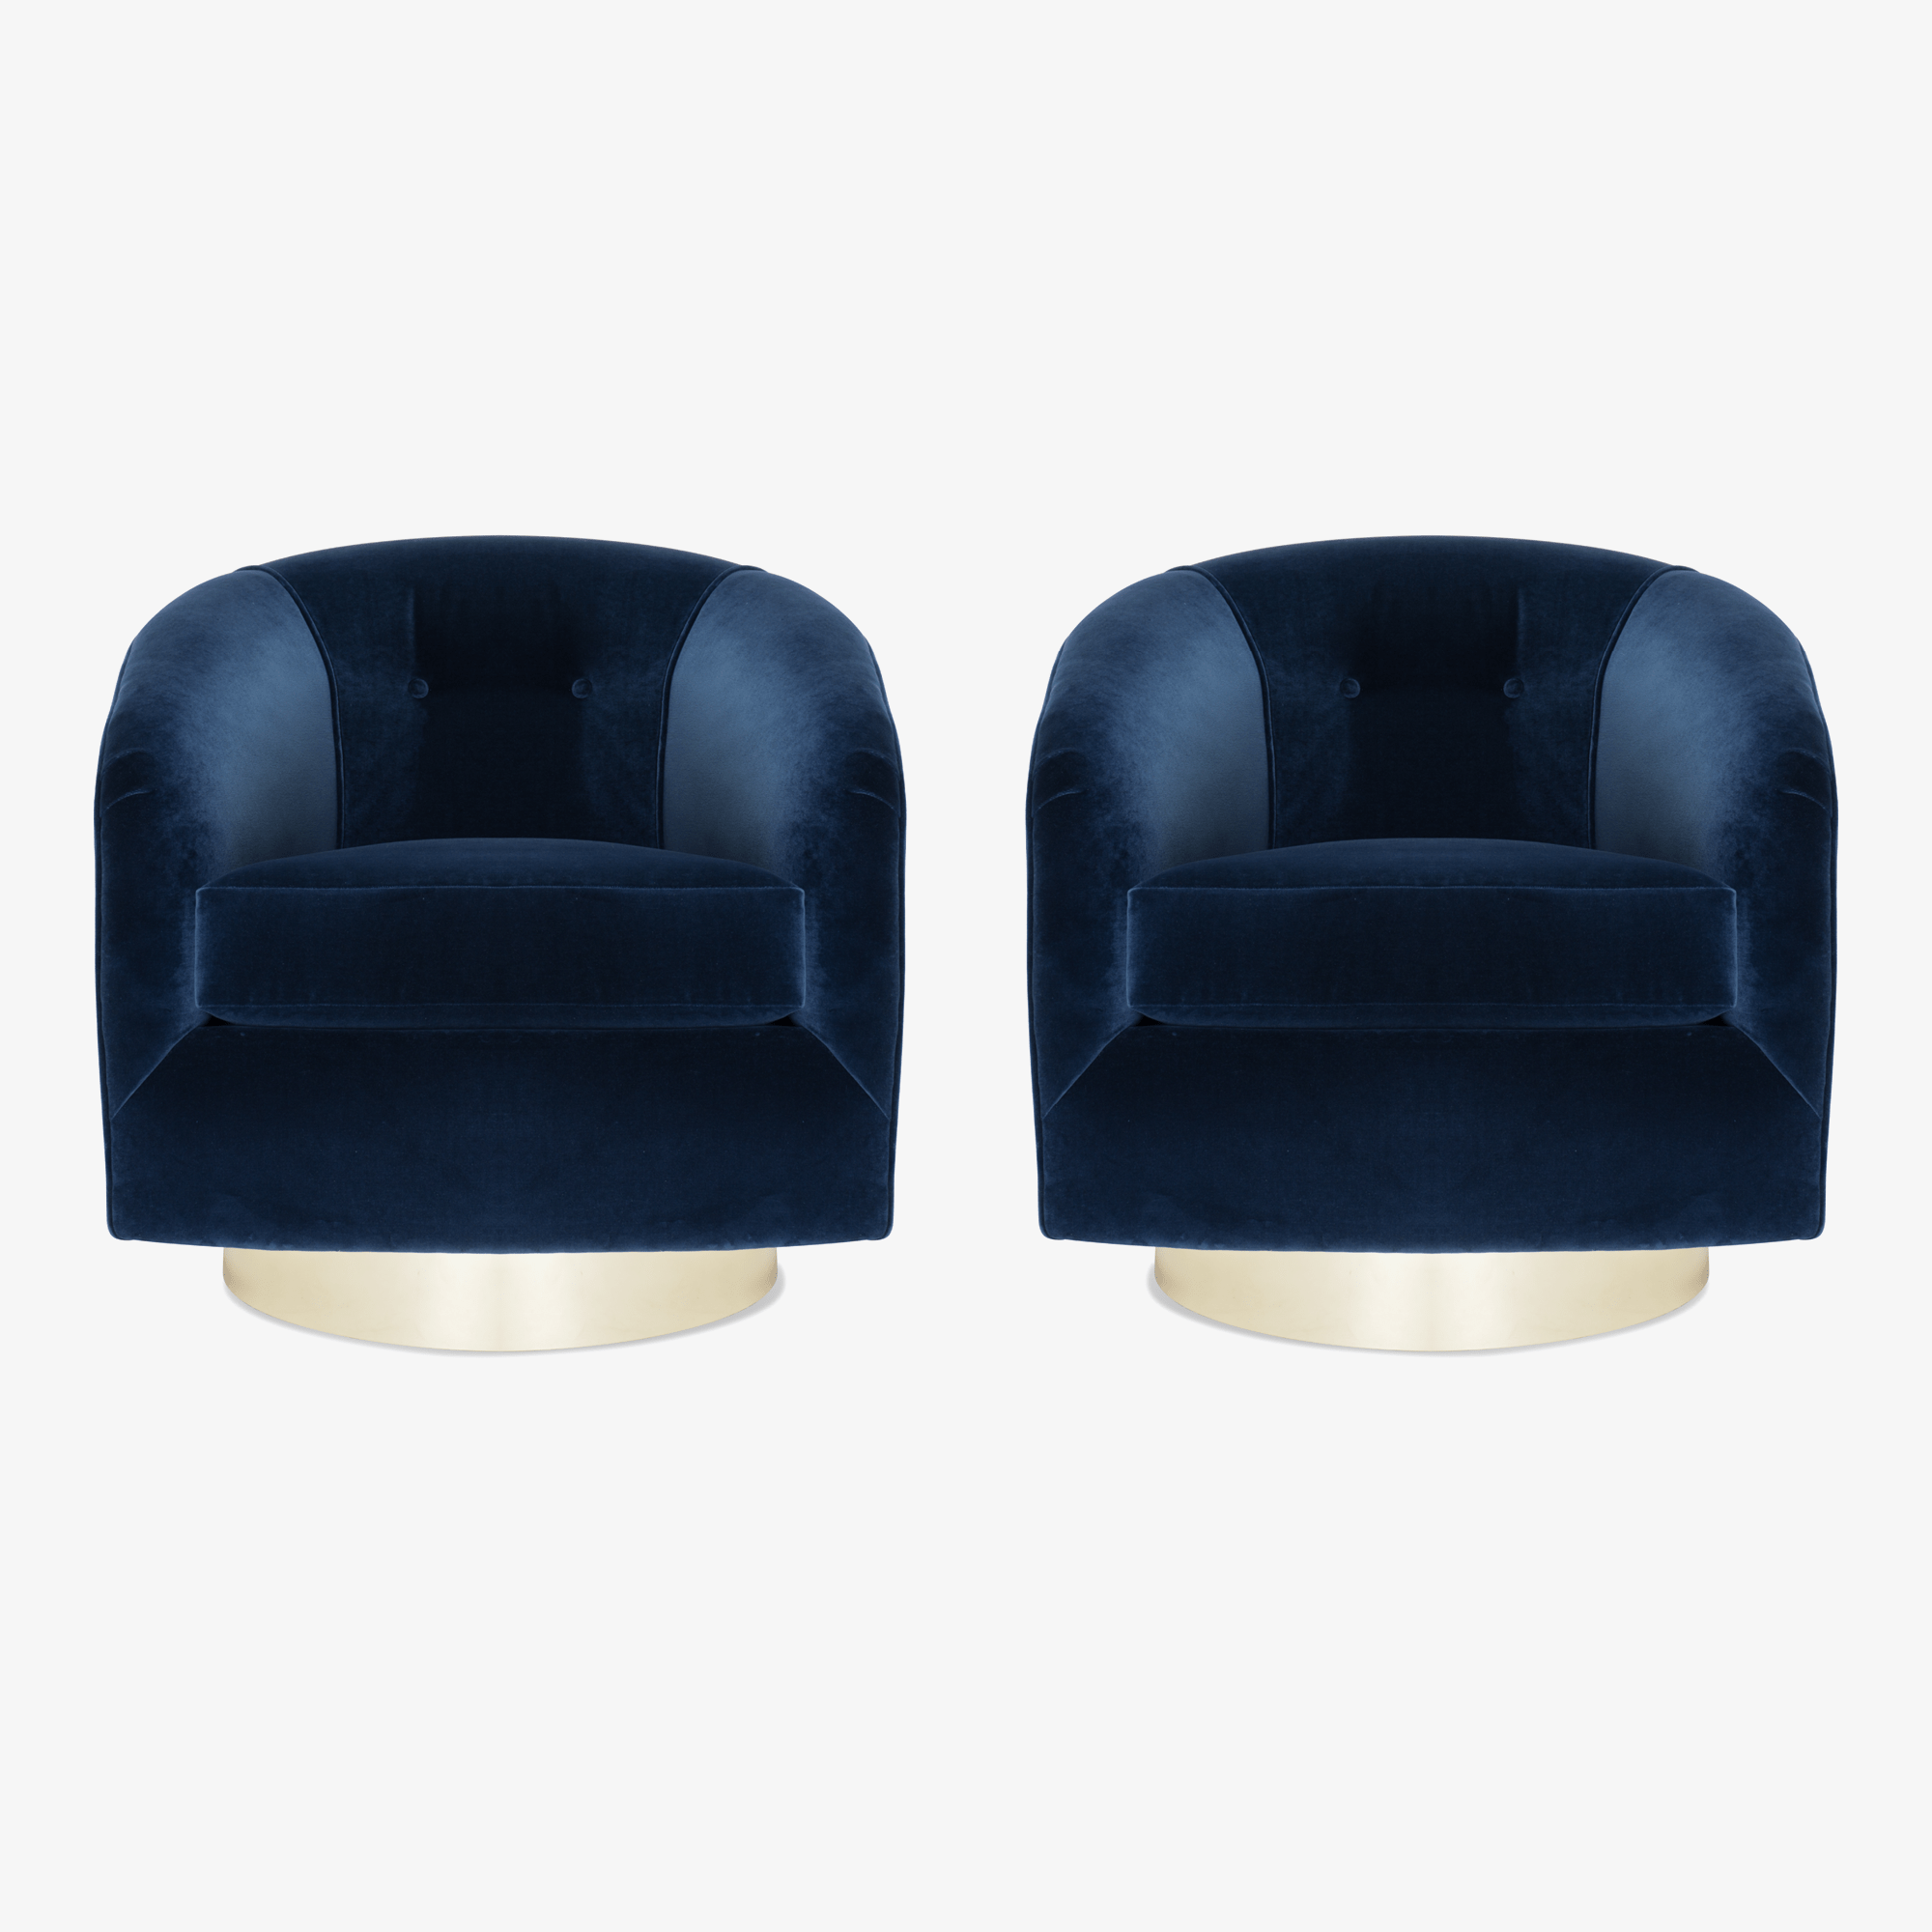 Tub Chairs Swivel Tub Chairs In Navy Brass Montage